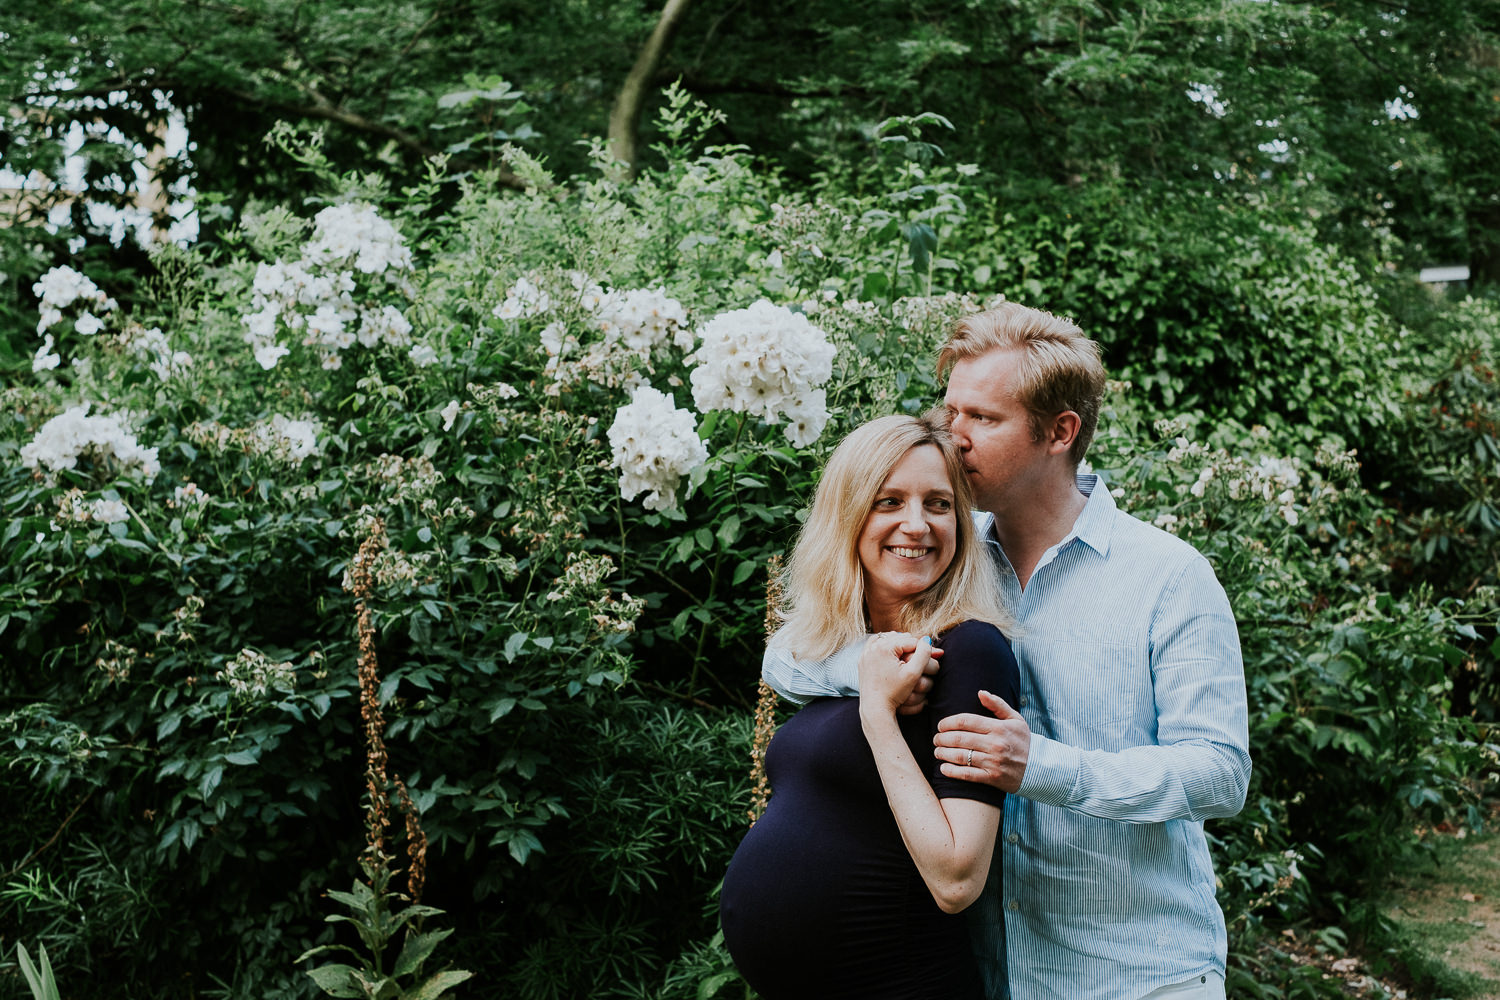 LONDON MATERNITY PHOTO SHOOT pregnant woman and husband relaxing in garden